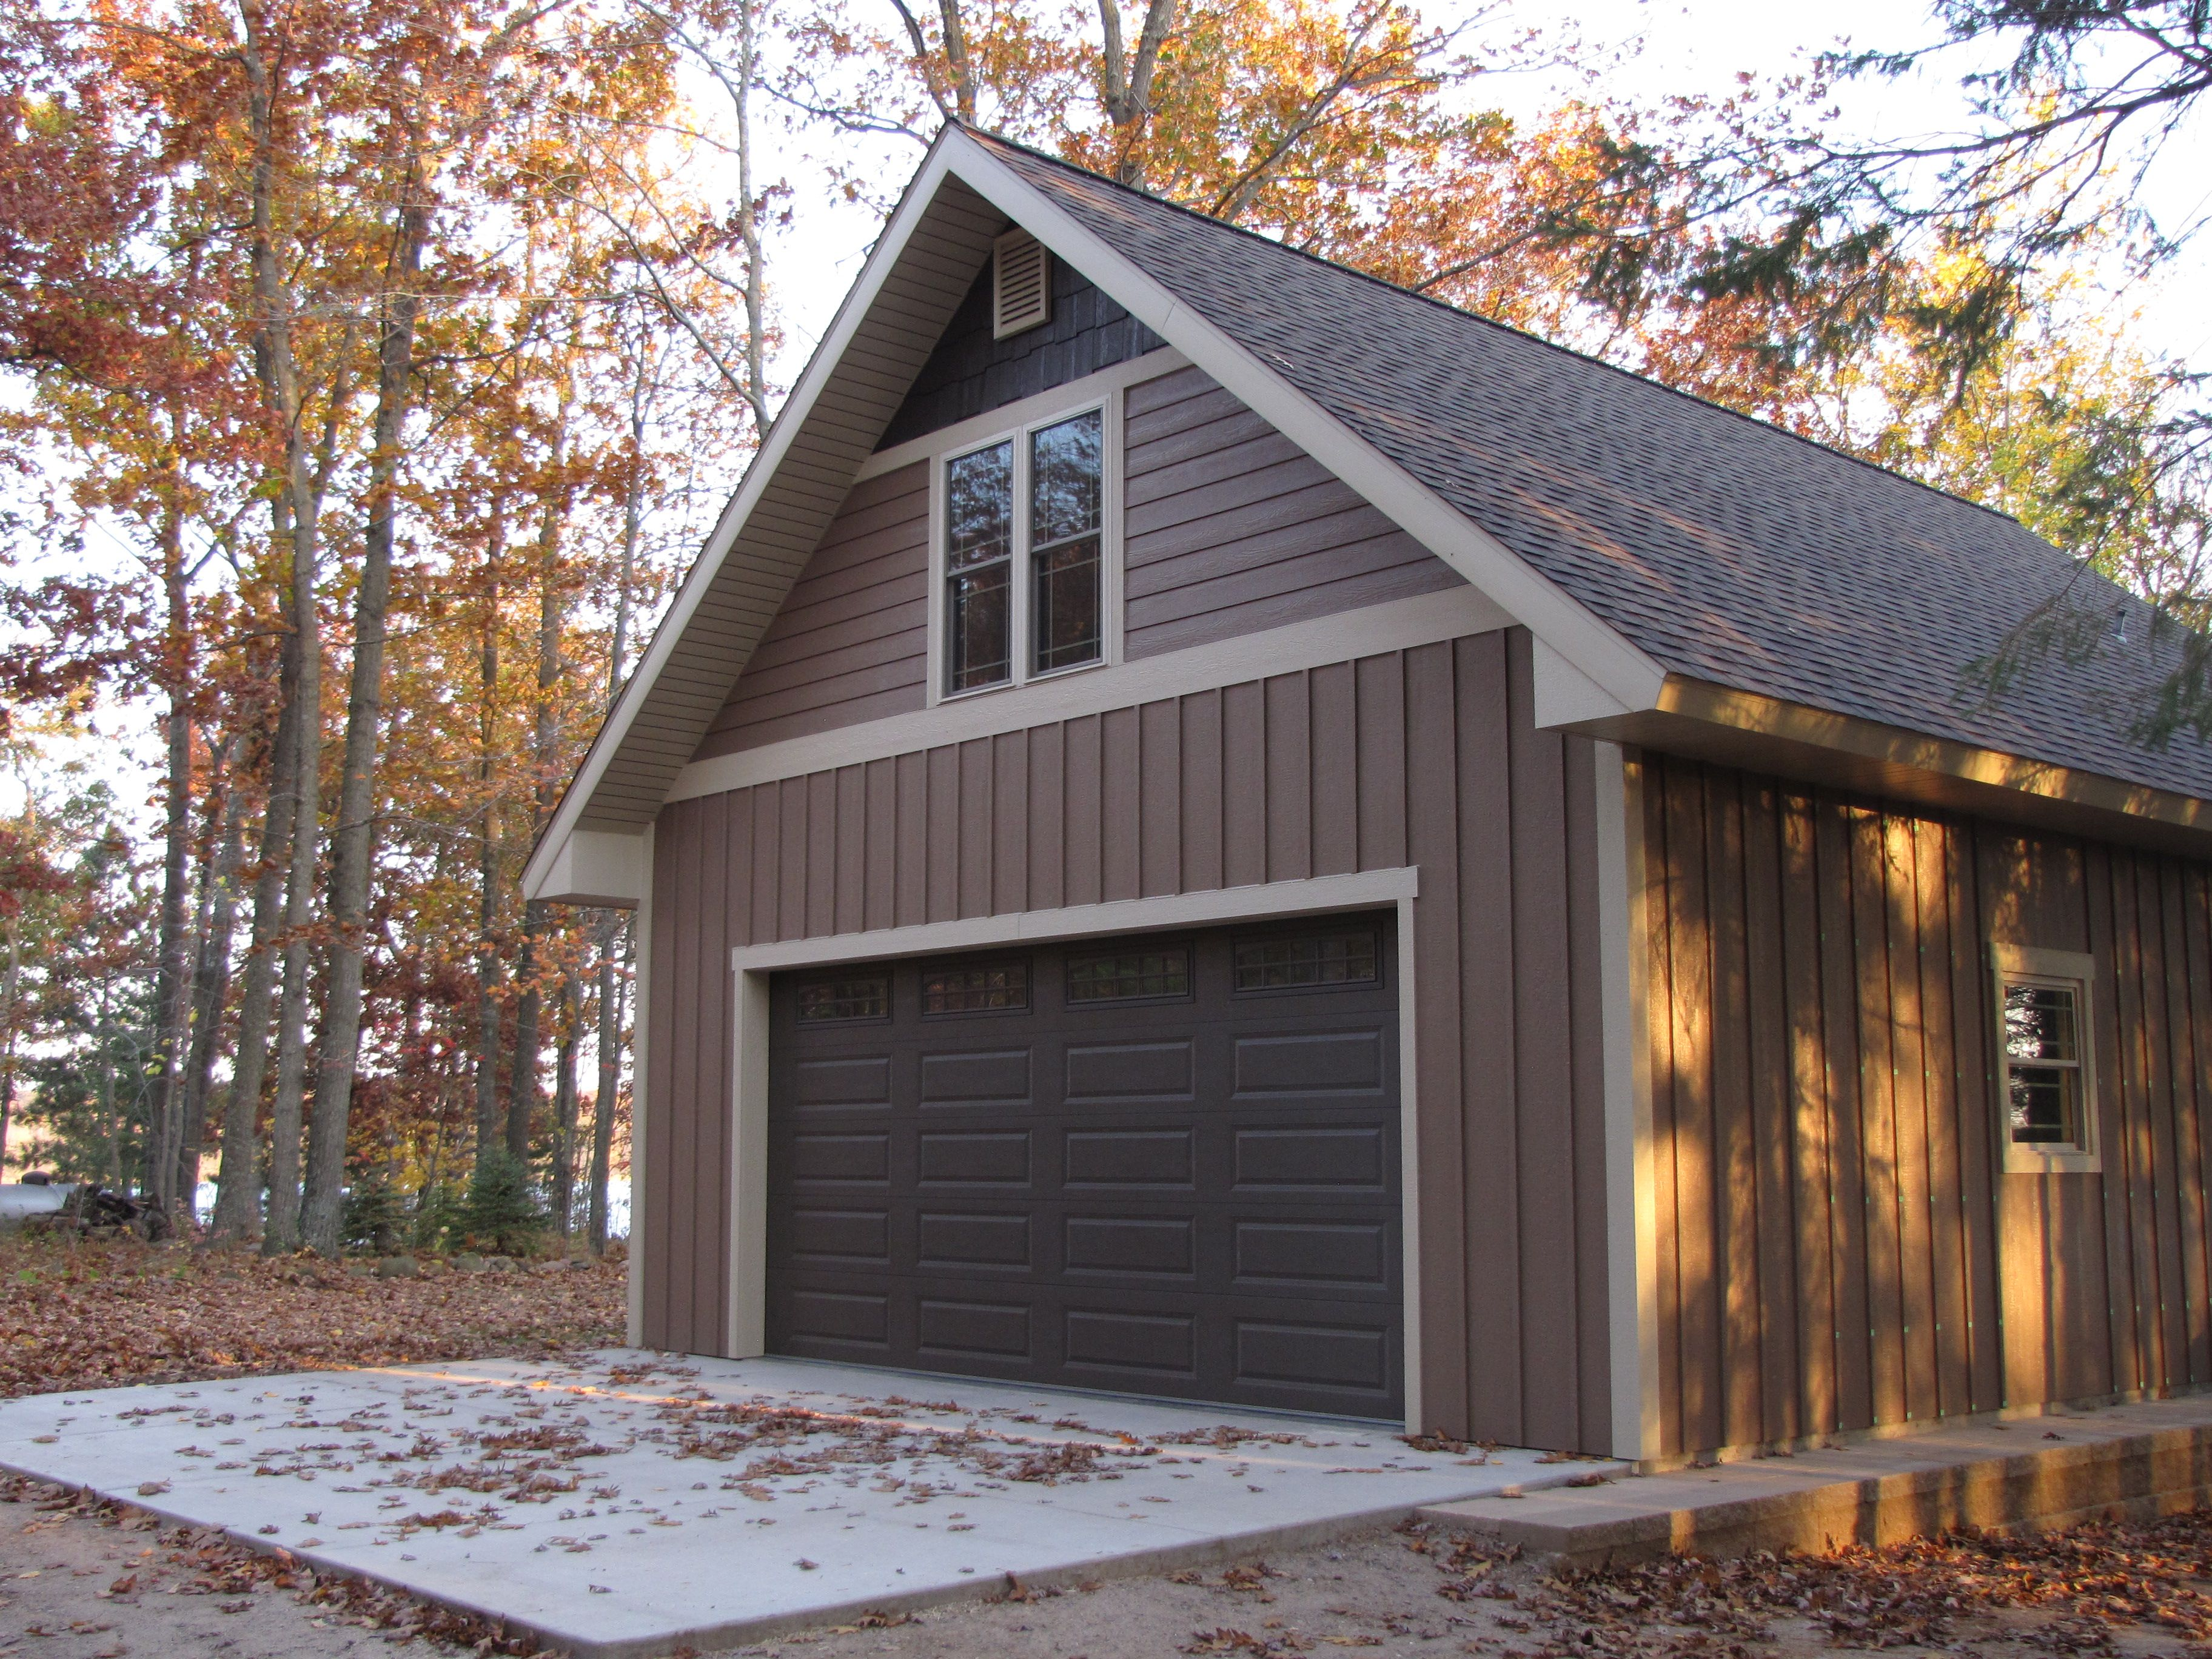 Horizontal Board And Batten Siding Board And Batten And Siding Color Is Diamond Kote Bungalow